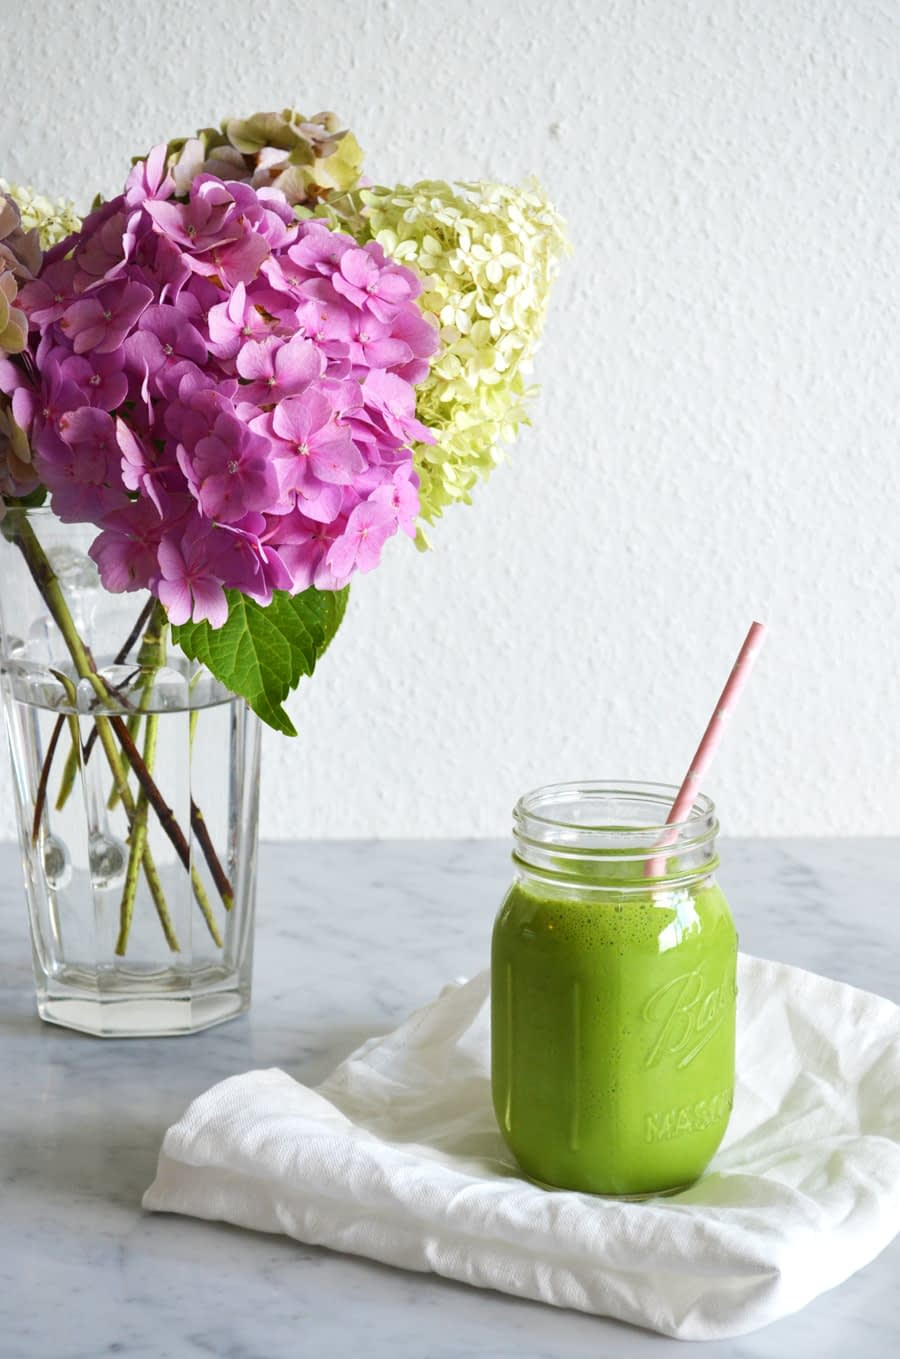 Green lime smoothie by That Healthy Kitchen